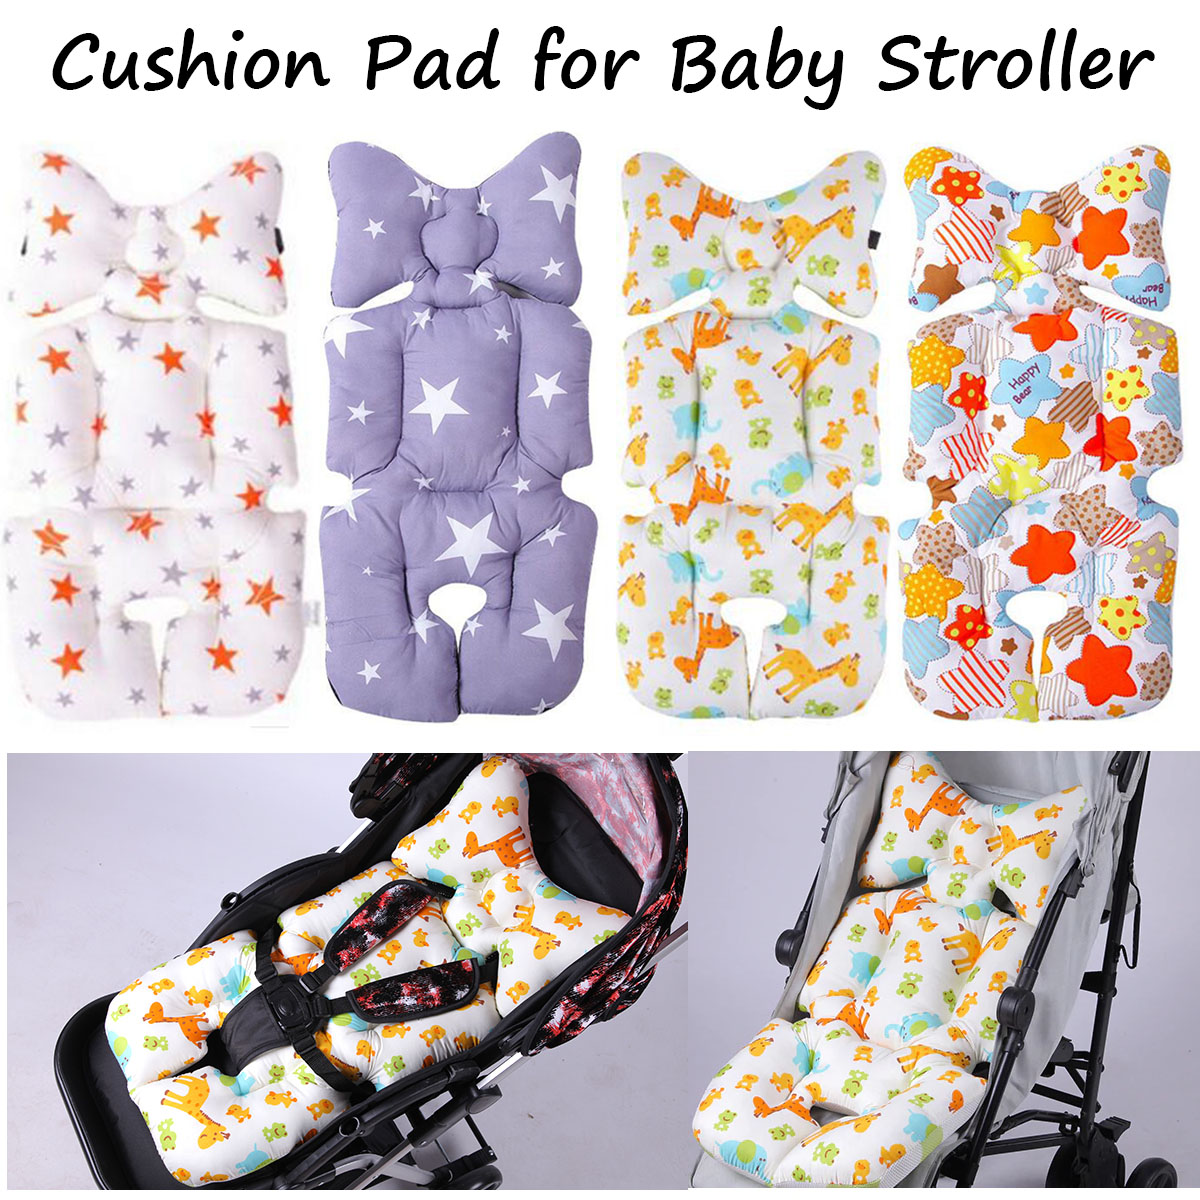 Hemore Baby Seat Cushion Liner Mat Pad Cover for Stroller Car High Chair Breathable Waterproof Liner Mat Pad Protector 1 Piece Pink Health Baby Care